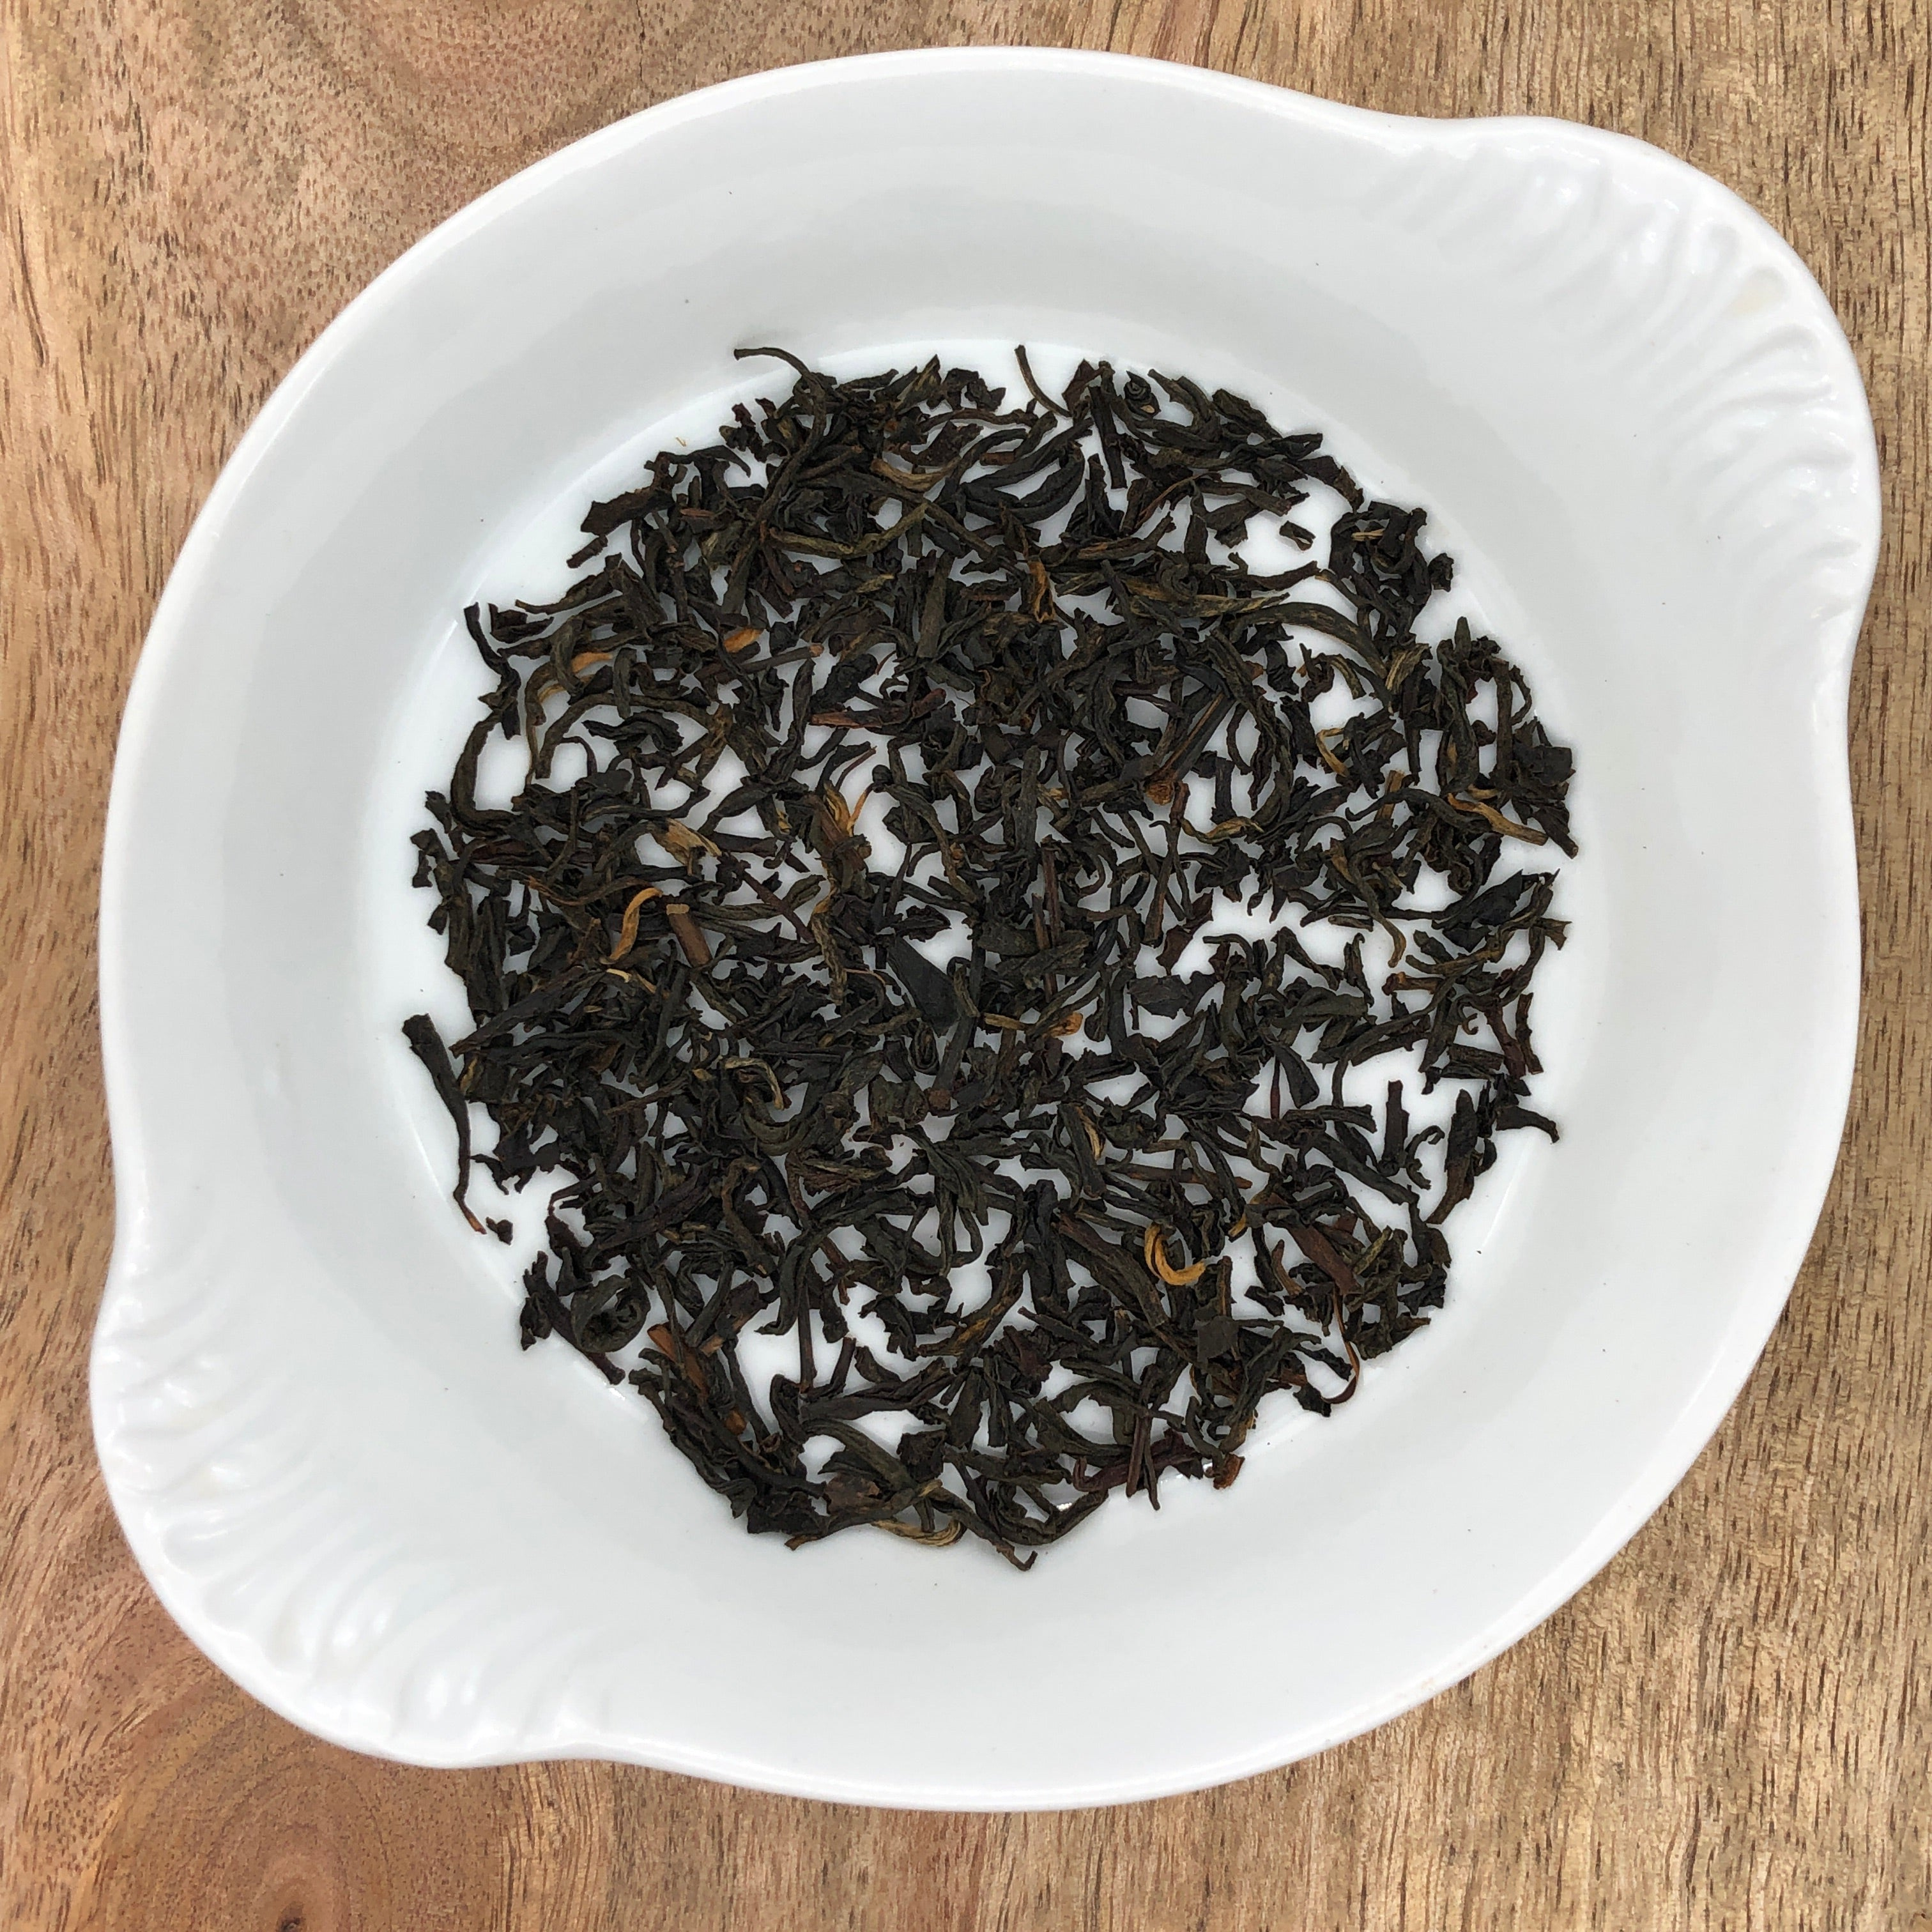 Earl Grey Cream (Bergamot) Black Tea Blend #105